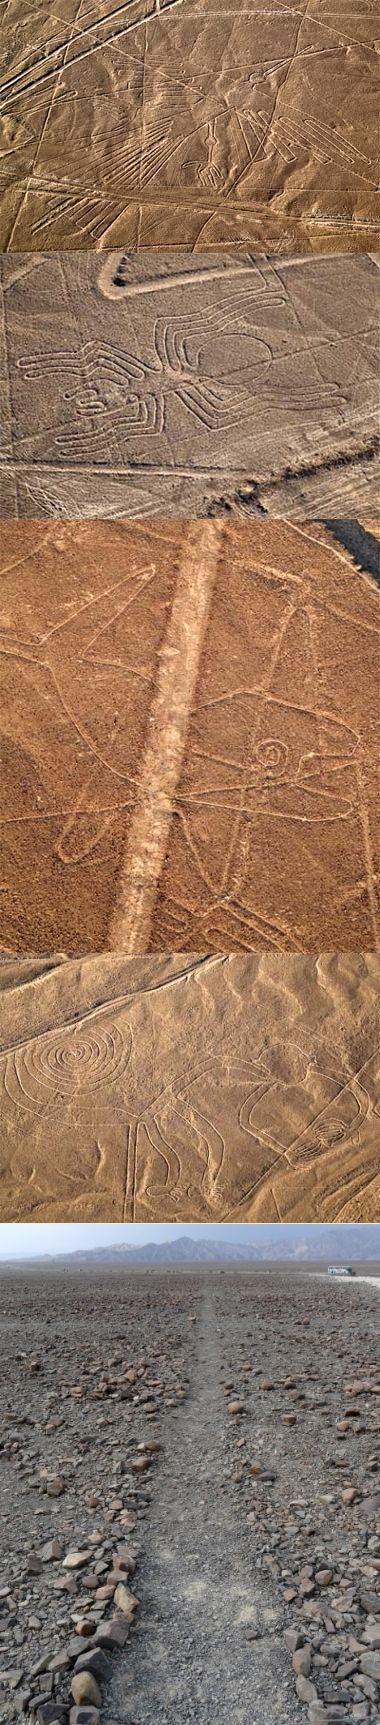 The Nazca lines are a series of ancient geoglyphs located in the Nazca Desert in southern Peru. Their purpose remains unknown. The hundreds of individual figures range in complexity from simple lines to stylized hummingbirds, spiders, monkeys, fish, sharks, orcas, & lizards. The lines are shallow designs made in the ground by removing the reddish pebbles & uncovering the whitish/grayish ground beneath. Designated as a UNESCO World Heritage Site in 1994.